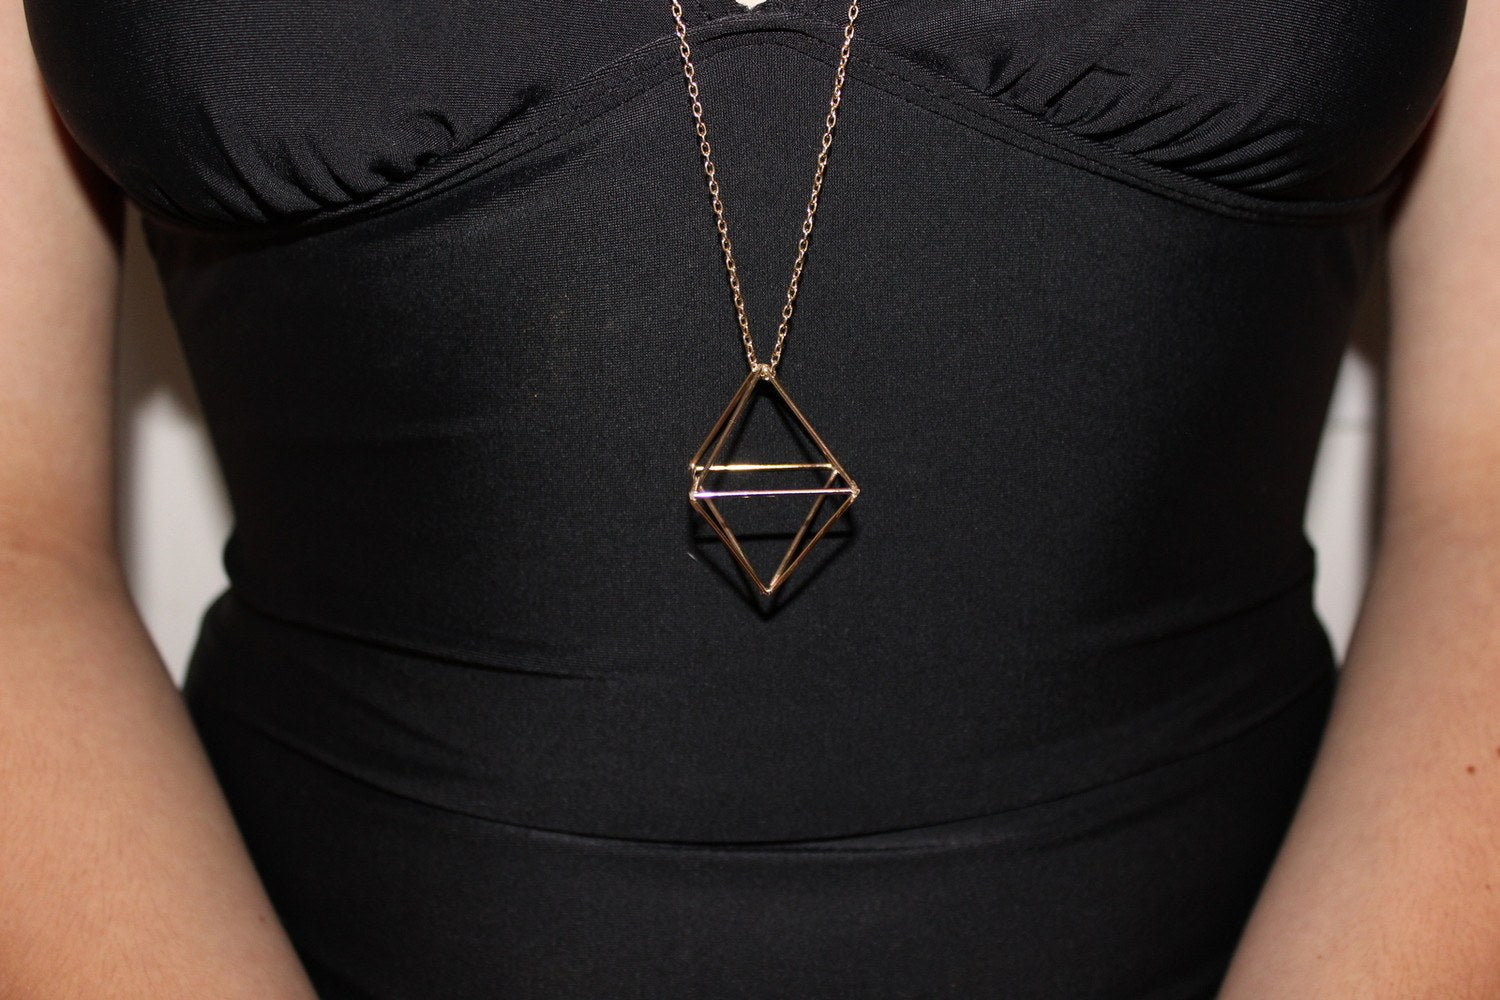 Octahedron Necklace by Polaris Jewelry